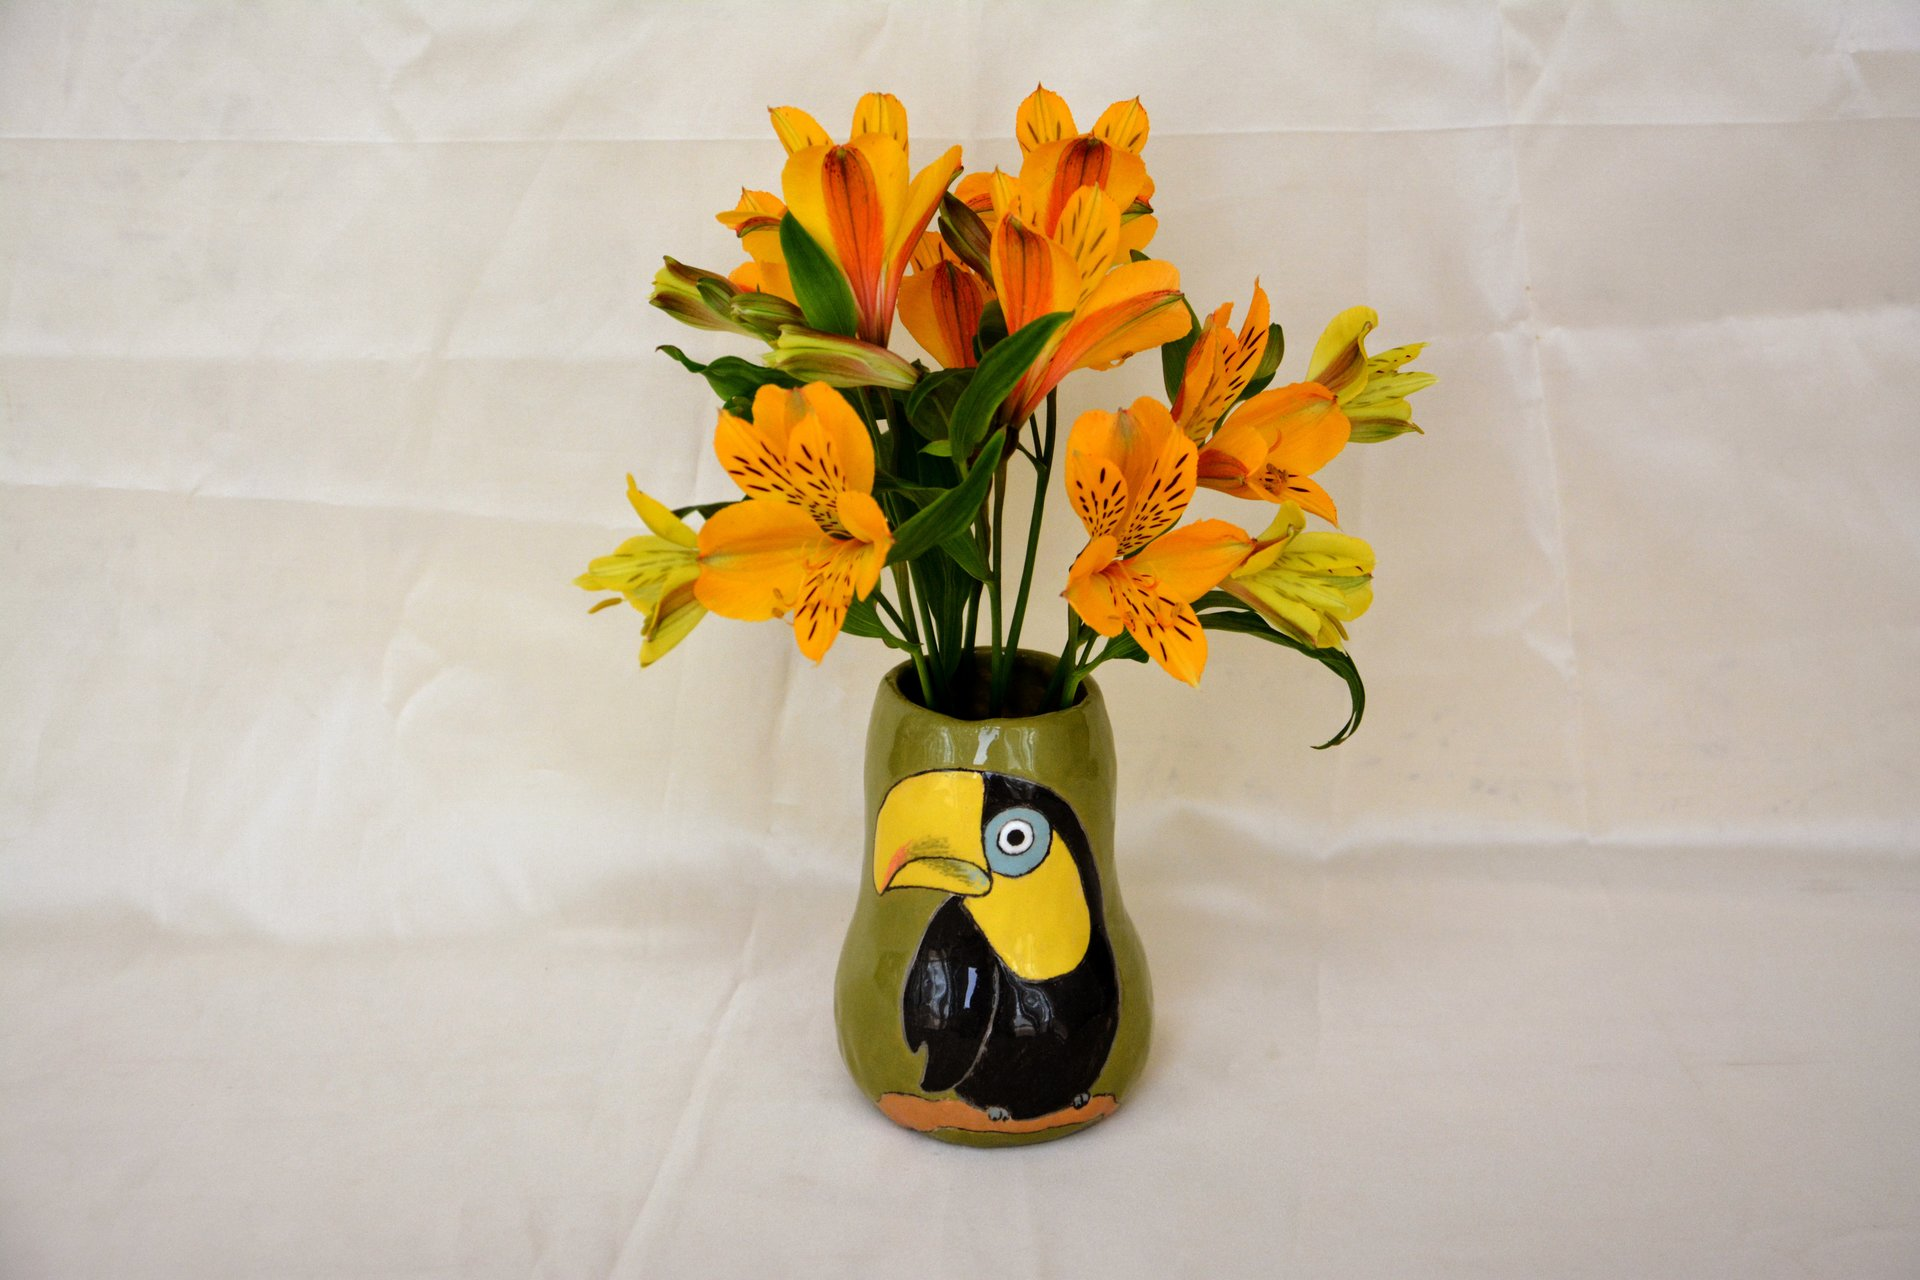 Hand painted vase (with a picture) «Bird Toucan», height - 12 cm. Photo 21.